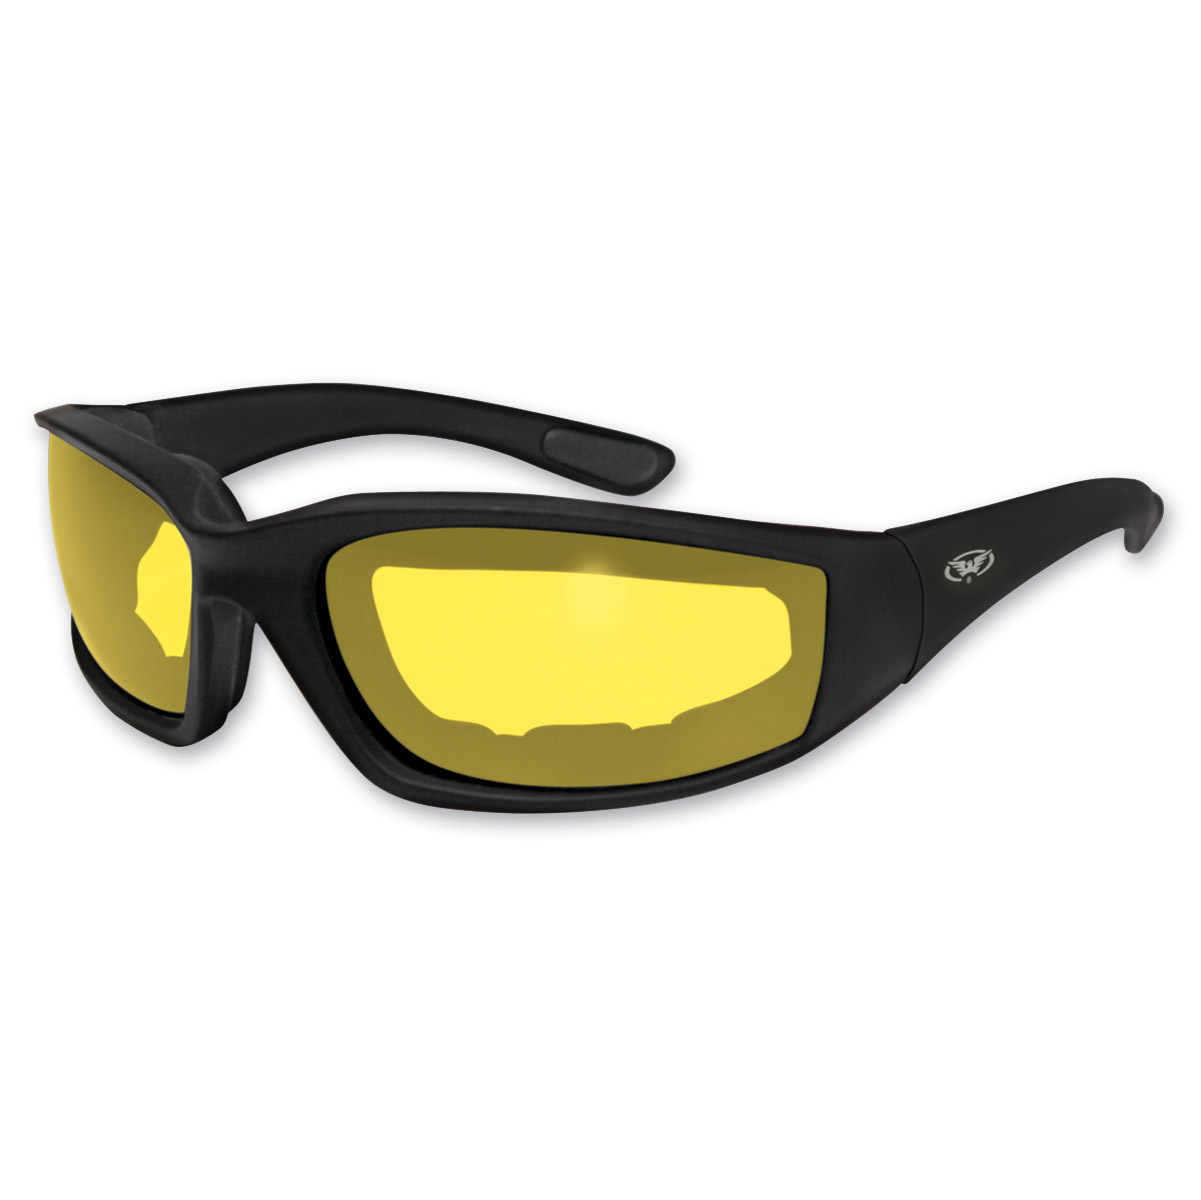 Global Vision Eyewear Kickback Padded Sunglasses with Yellow Lens